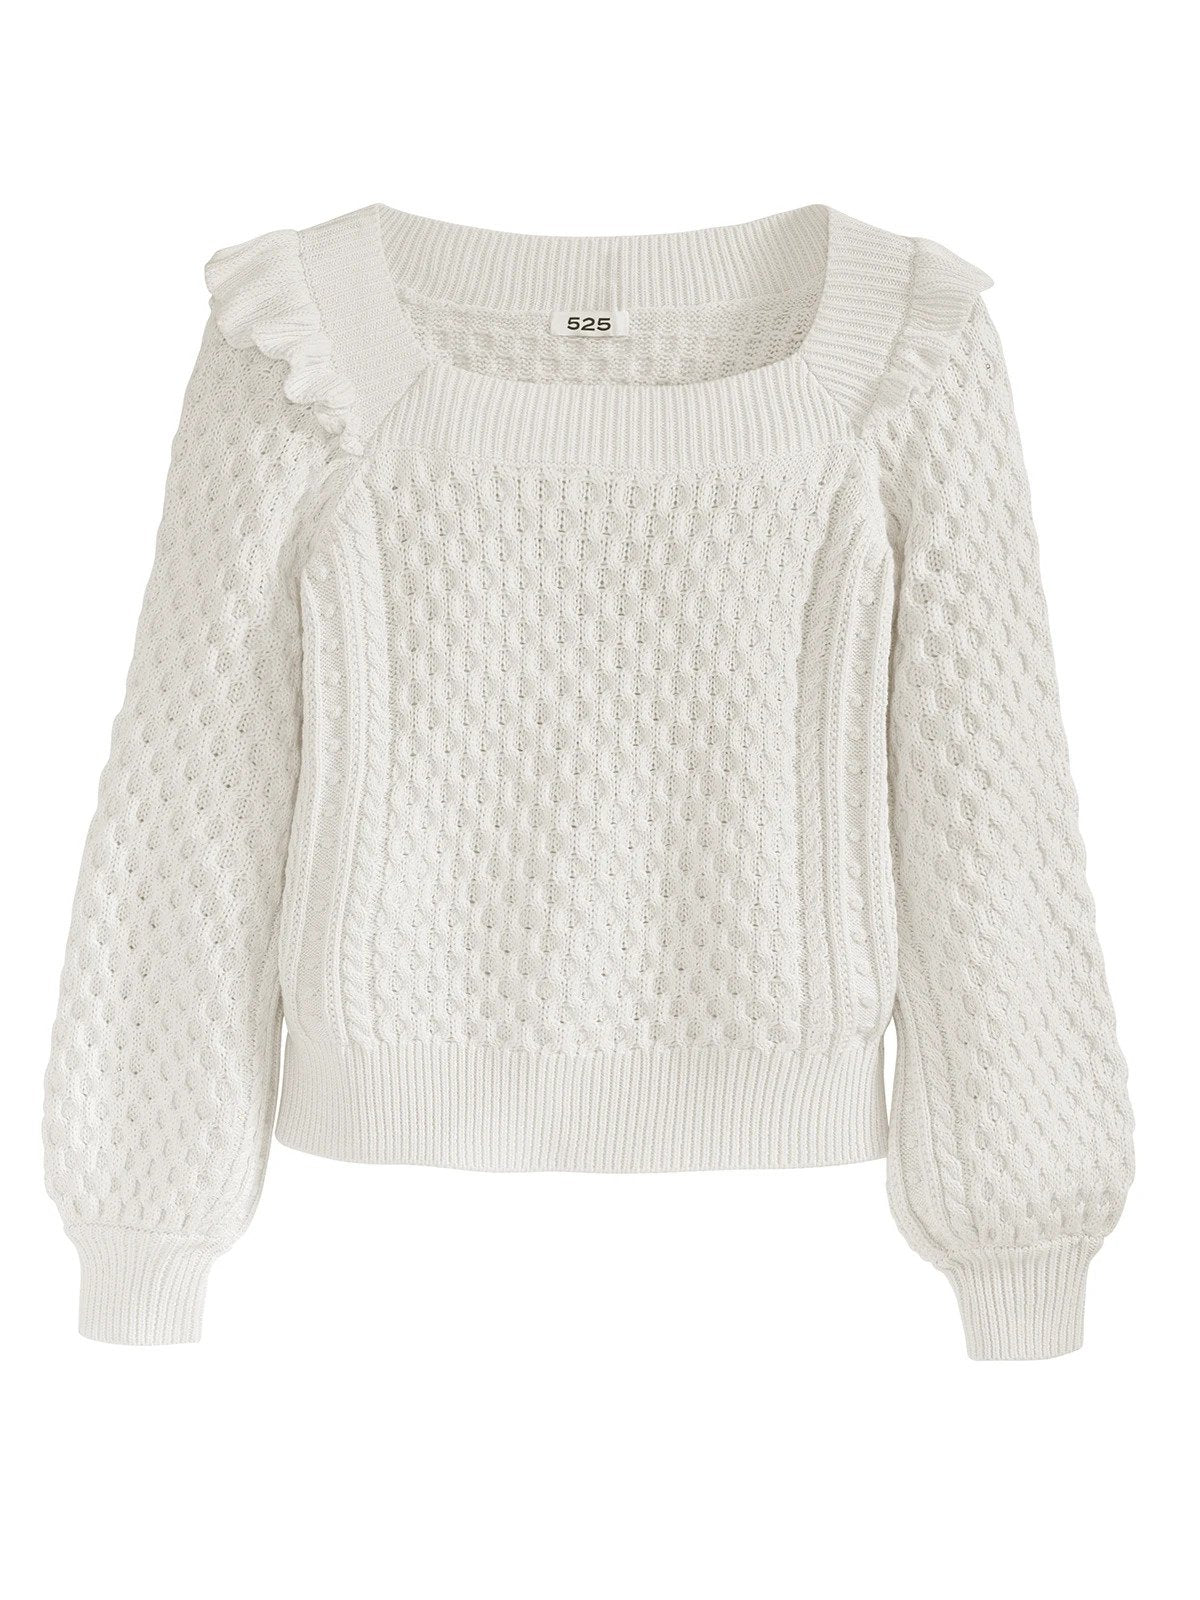 Ruffle Cable Knit Sweater in Chalk